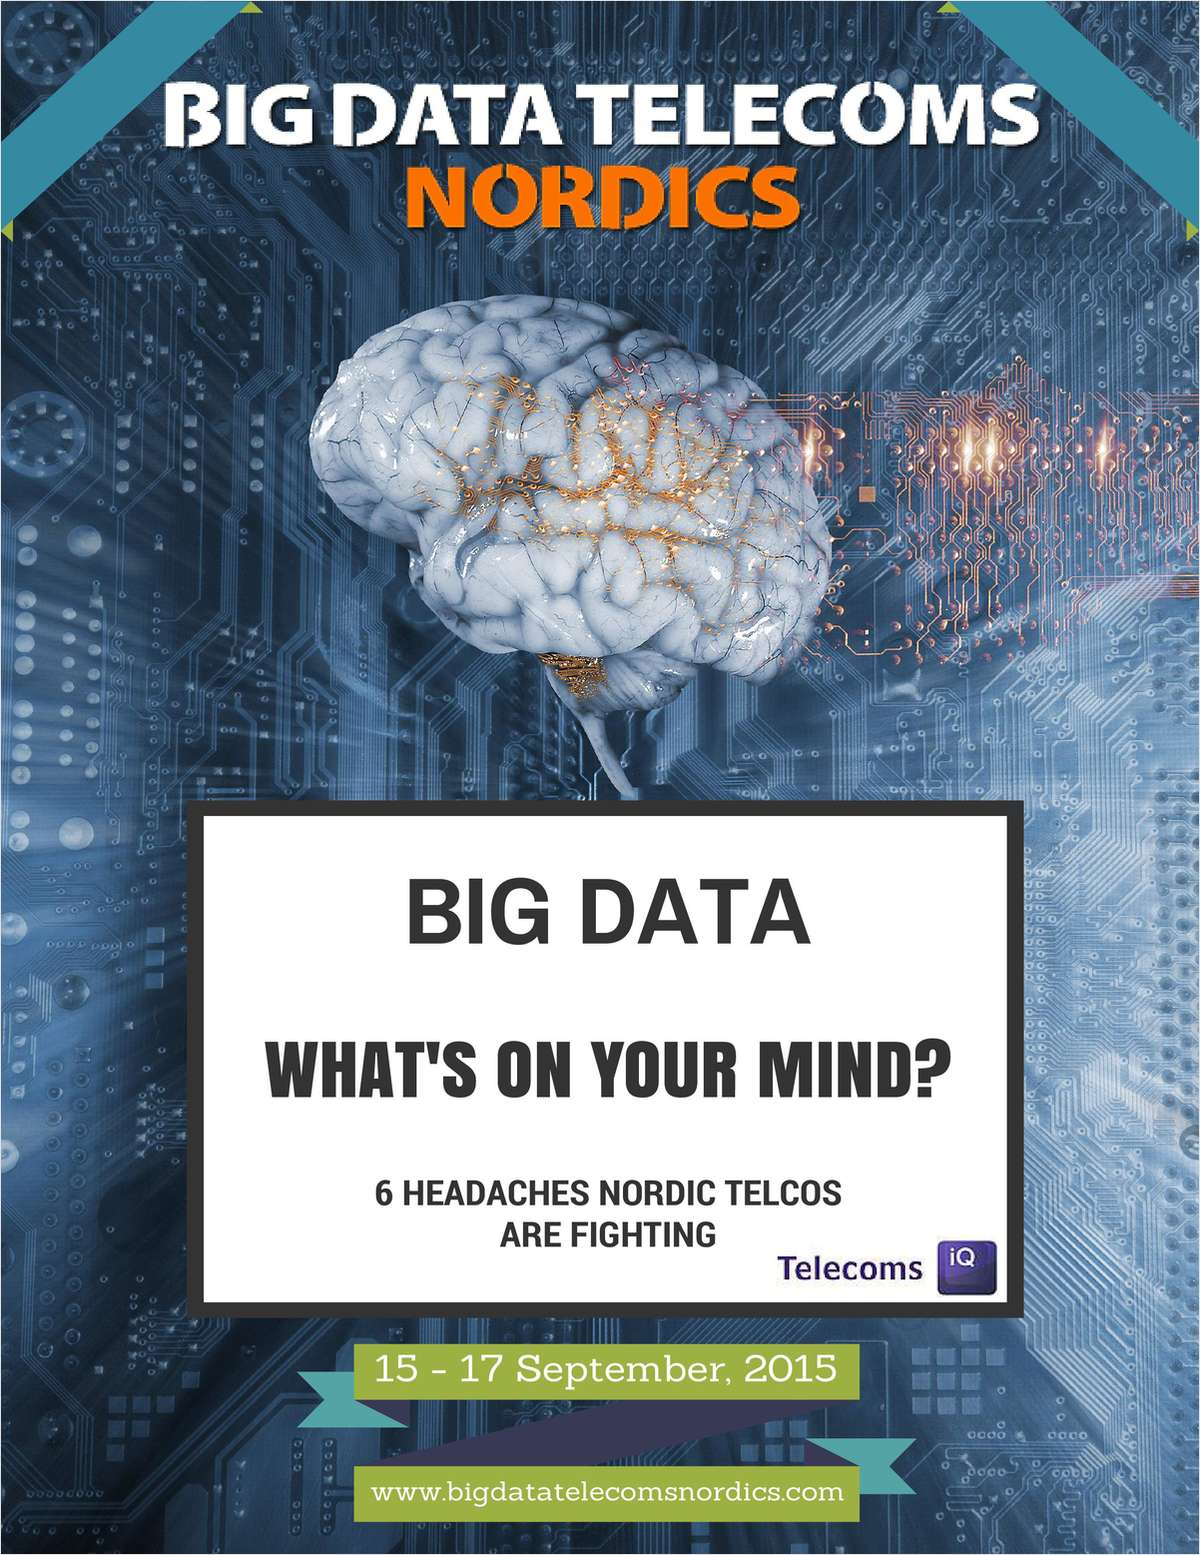 Big Data: 6 Headaches Nordic Telcos Are Fighting